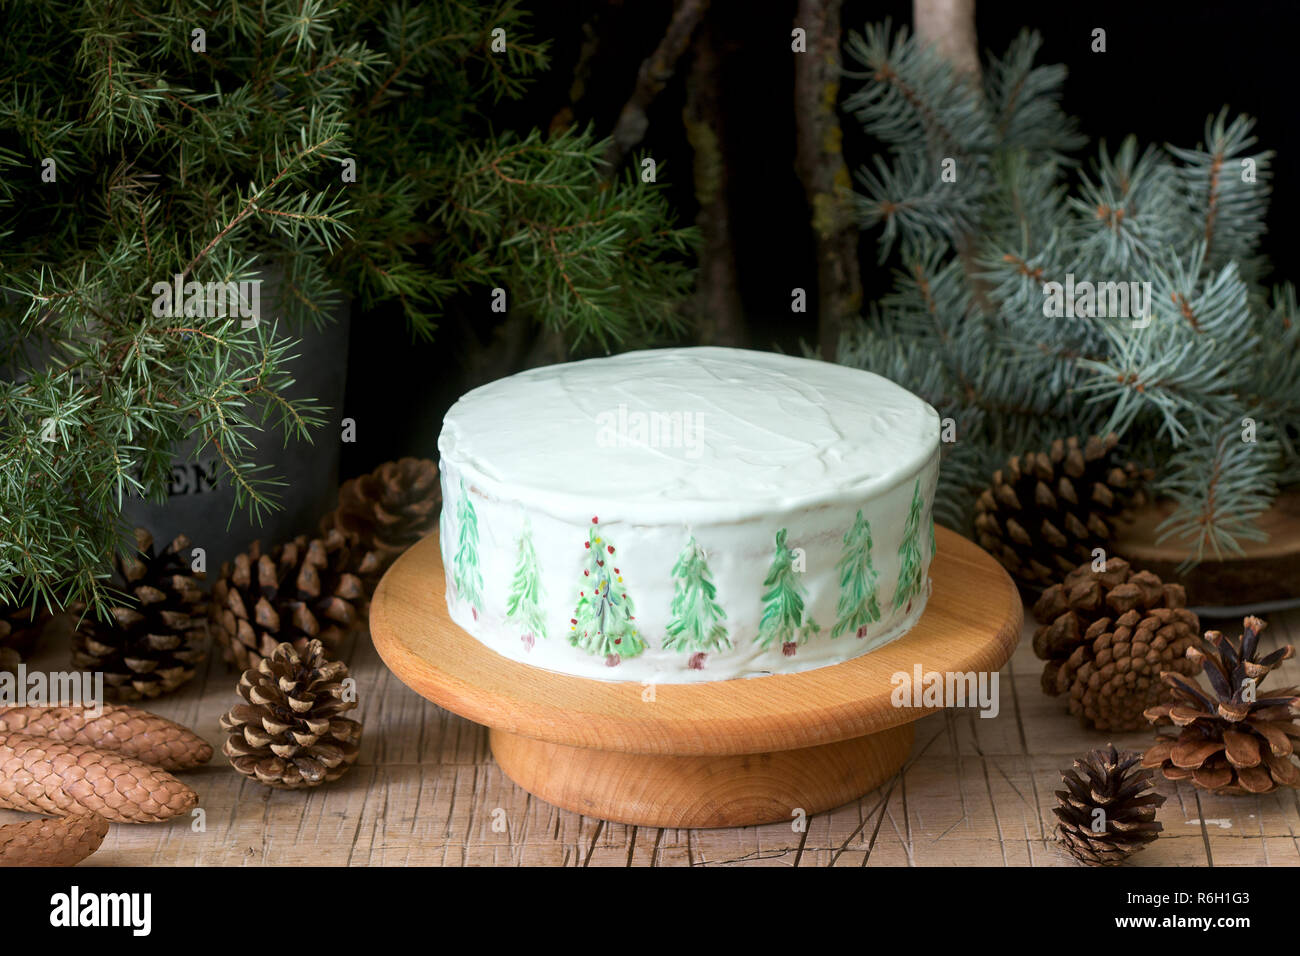 Celebratory Cake Decorated With Painted Christmas Trees On A Dark Background Of Branches And Cones Rustic Style Stock Photo Alamy